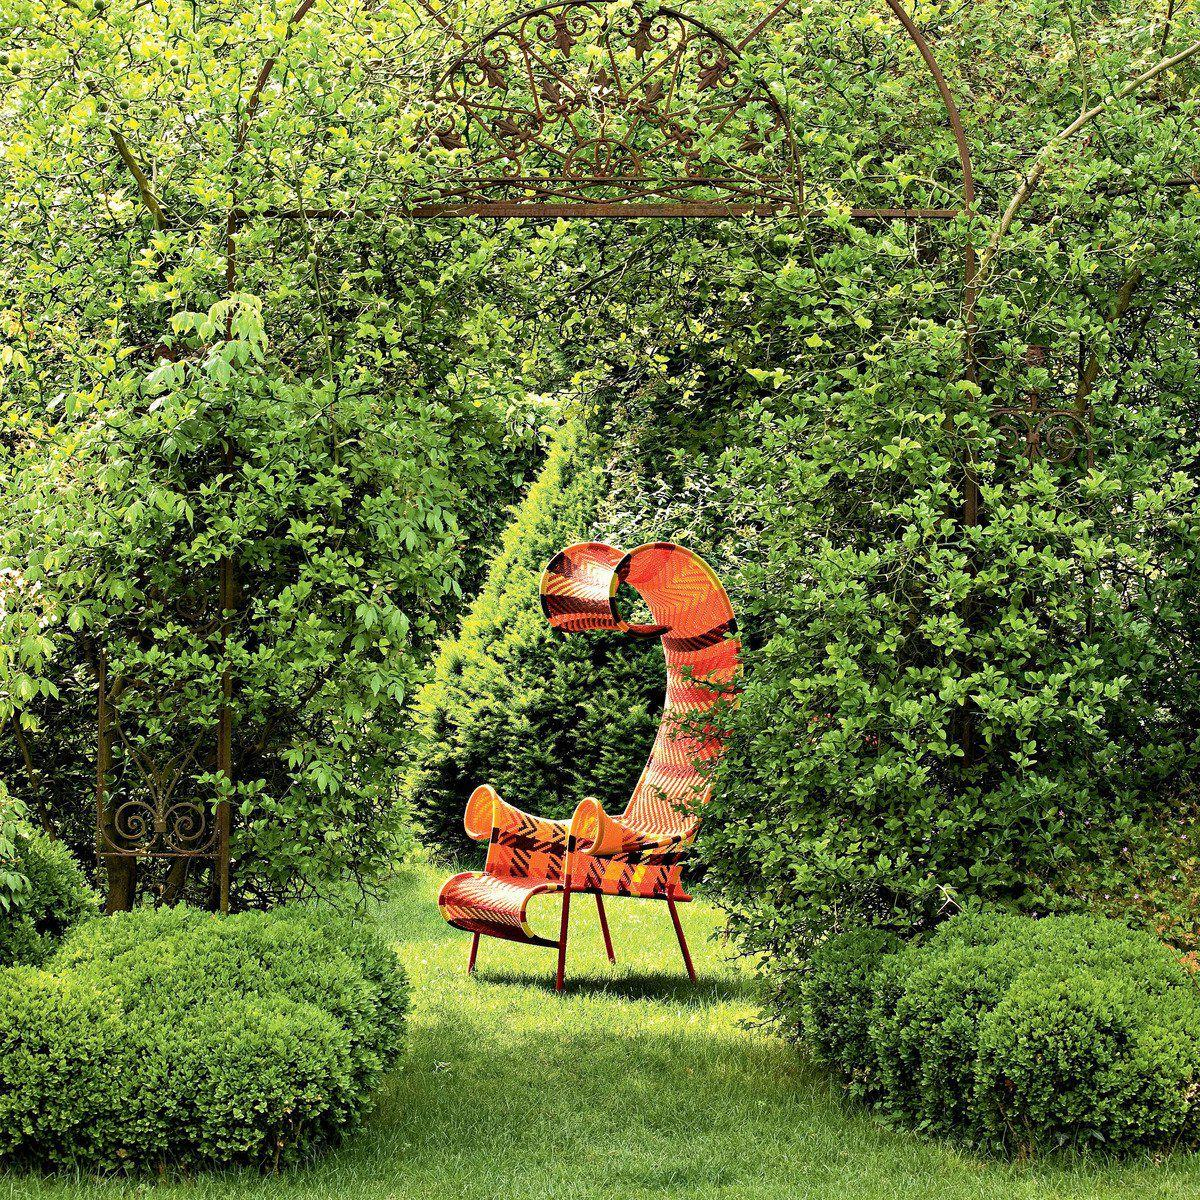 Here's outdoor decor that's 'out there' and edgy